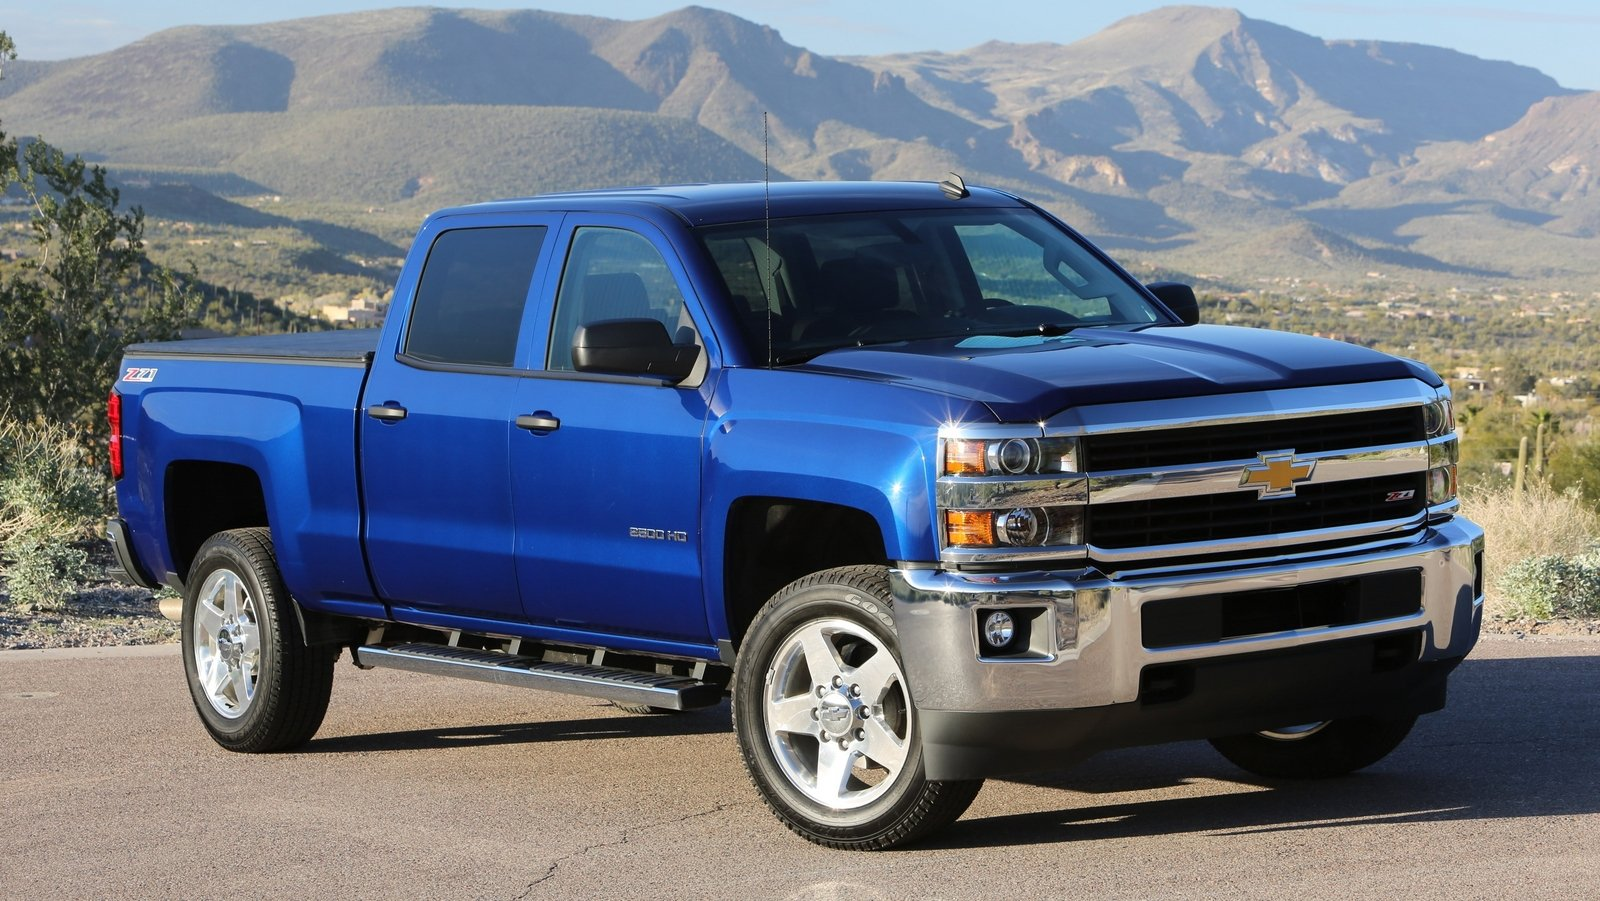 chevrolet silverado 24_1600x0w 2016 chevrolet silverado hd review top speed Chevy Silverado Evap System at readyjetset.co